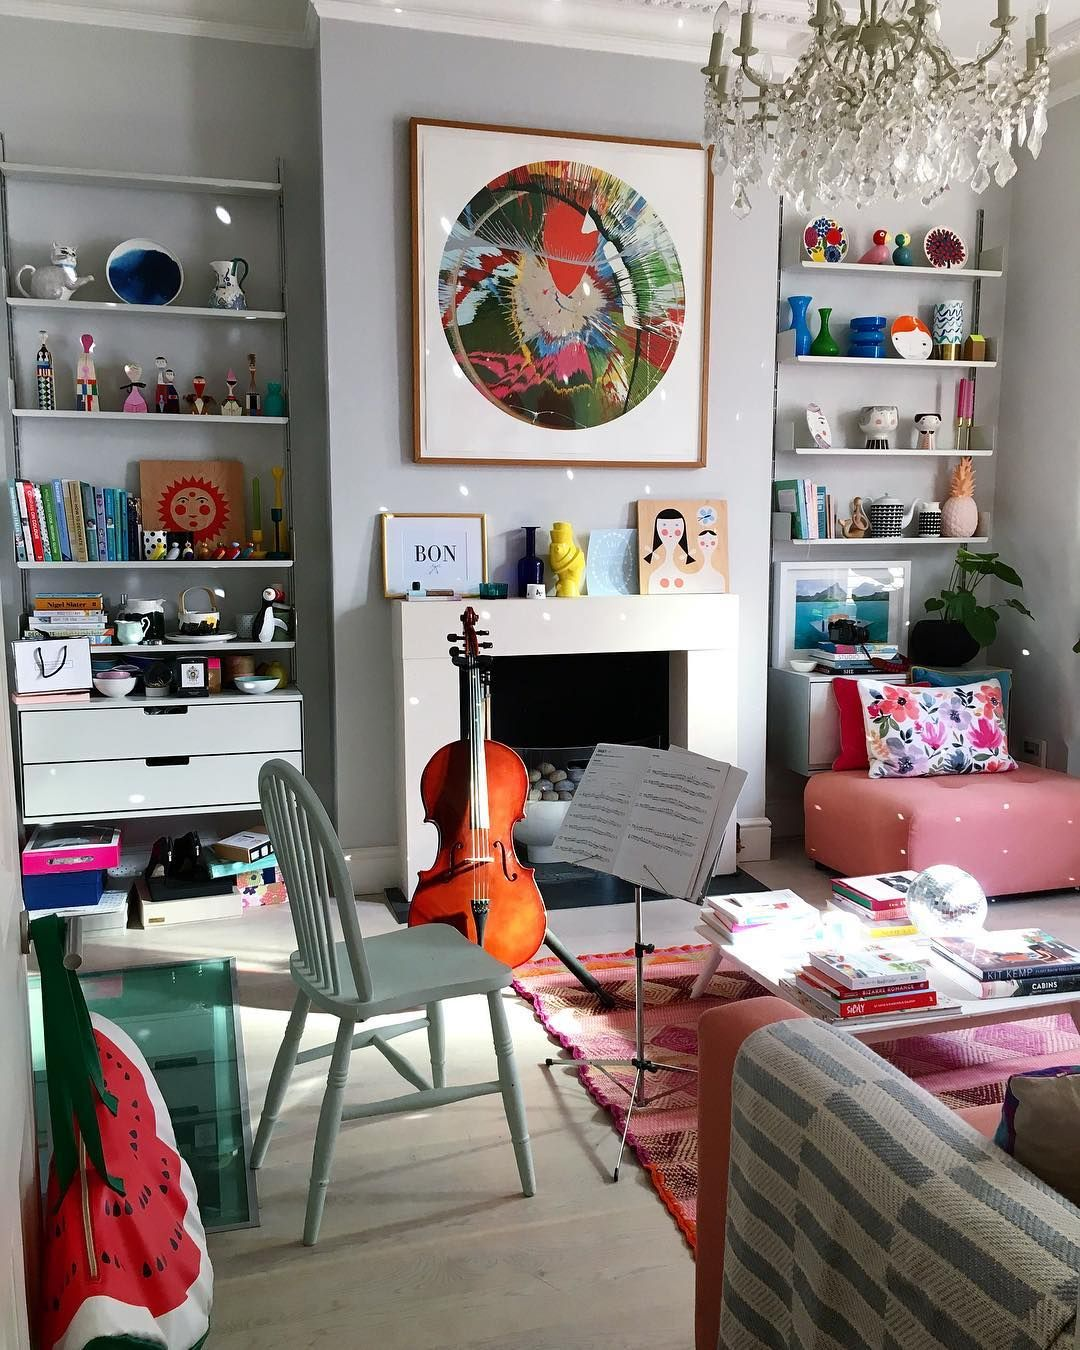 Home Design Ideas Instagram: Geraldine Tan On Instagram : Here S My Happy Mess At Home